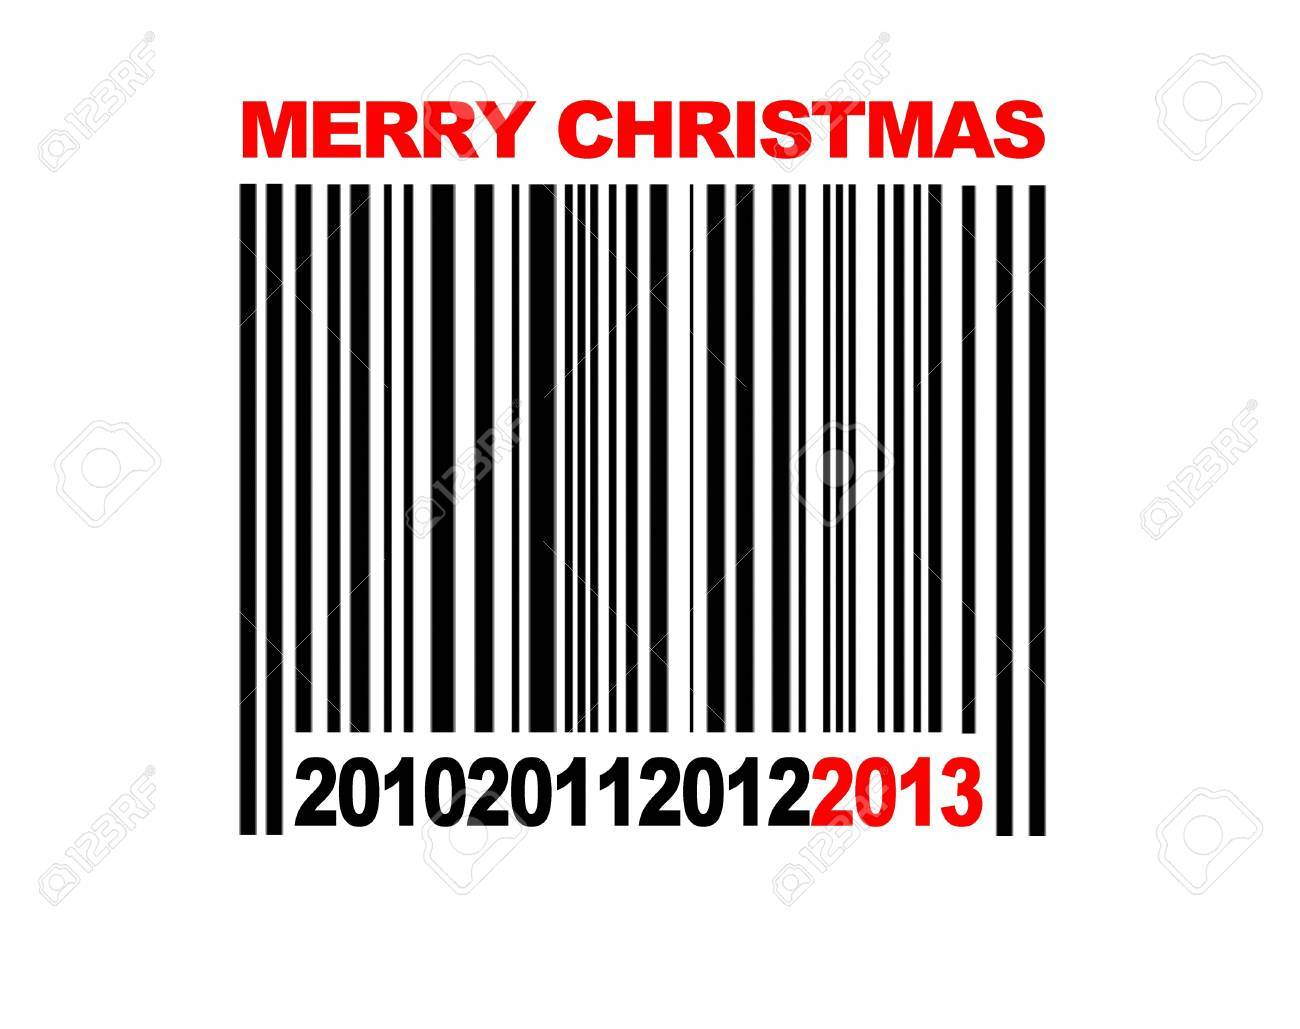 Barcode Merry Christmas 2013. Stock Photo - 13329178